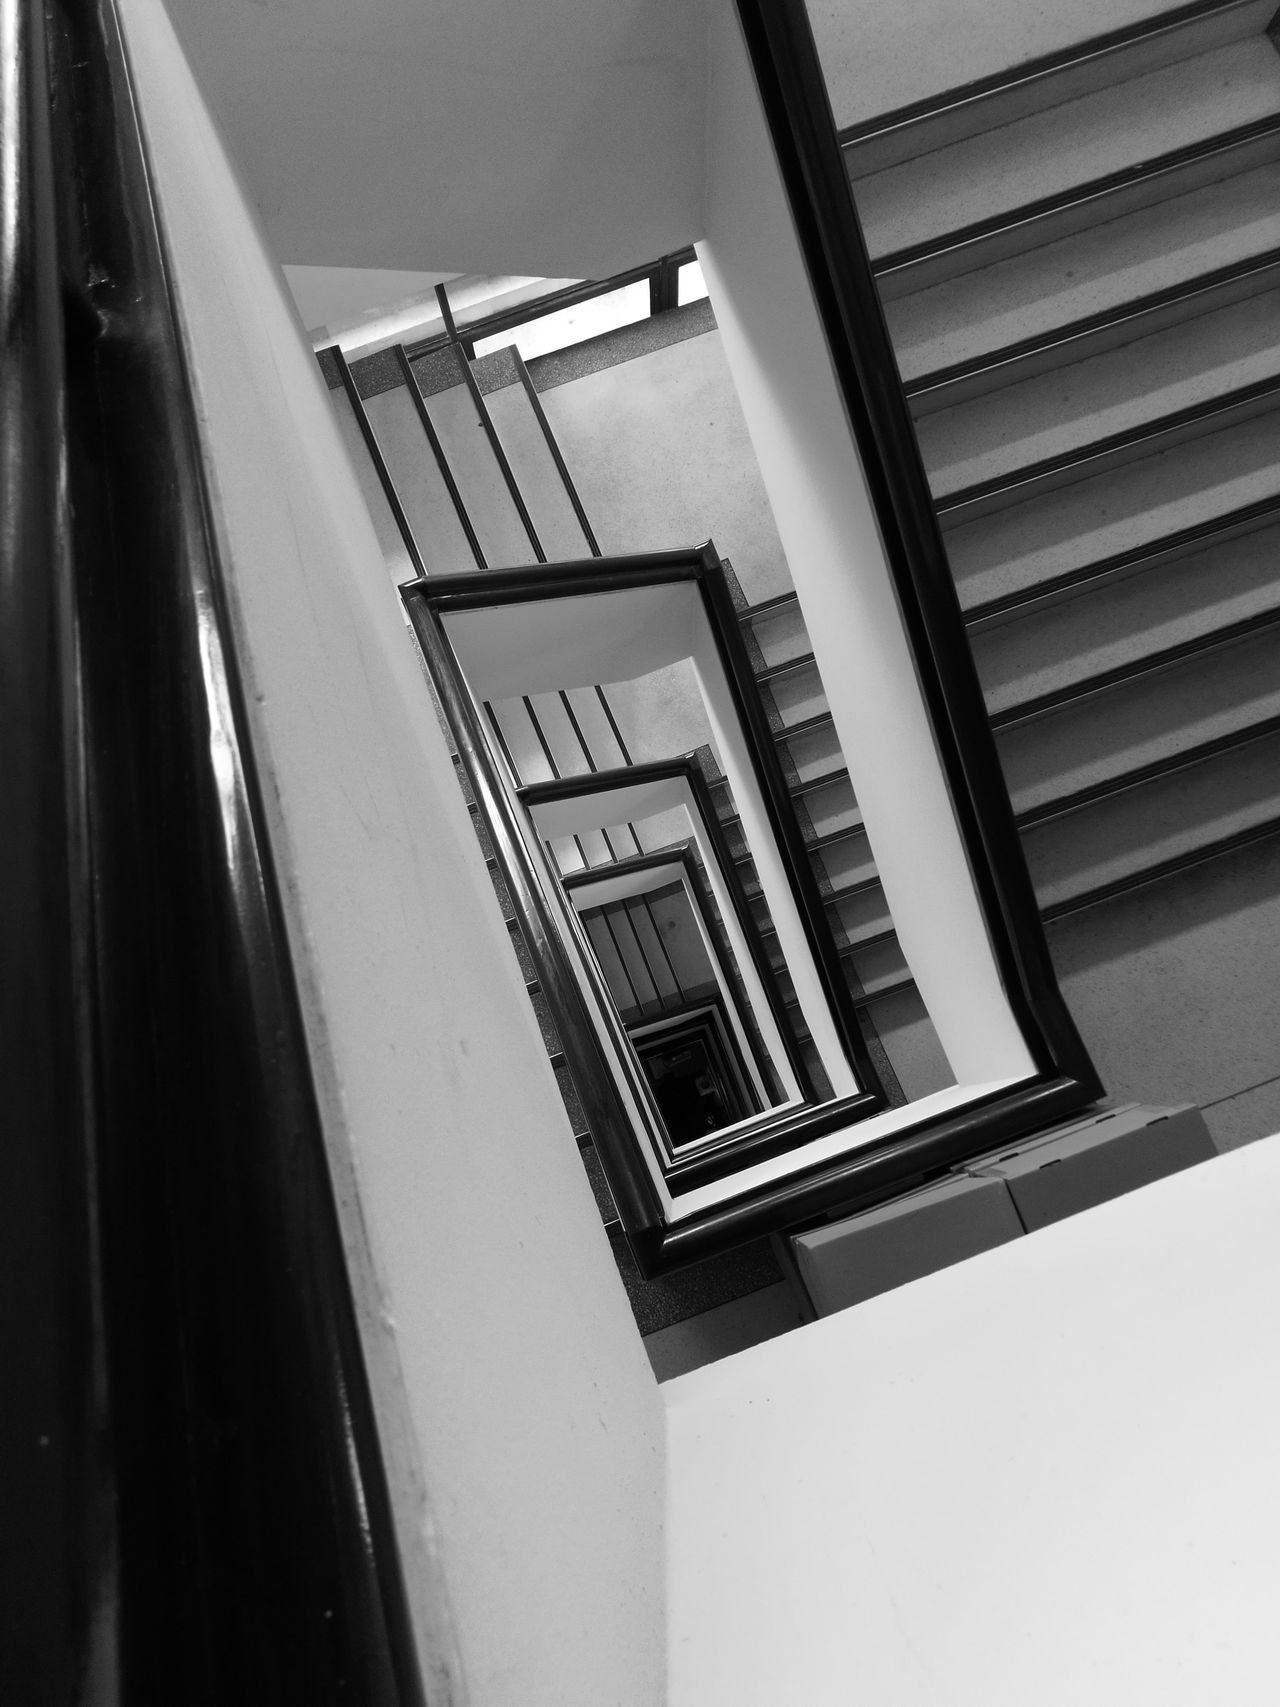 Built Structure Architecture Steps And Staircases Staircase Low Angle View Steps No People Indoors  Day EyeEm Thailand EyeEm Best Shots EyeEmBestPics Focus On Foreground Black&white Blackandwhitephotography